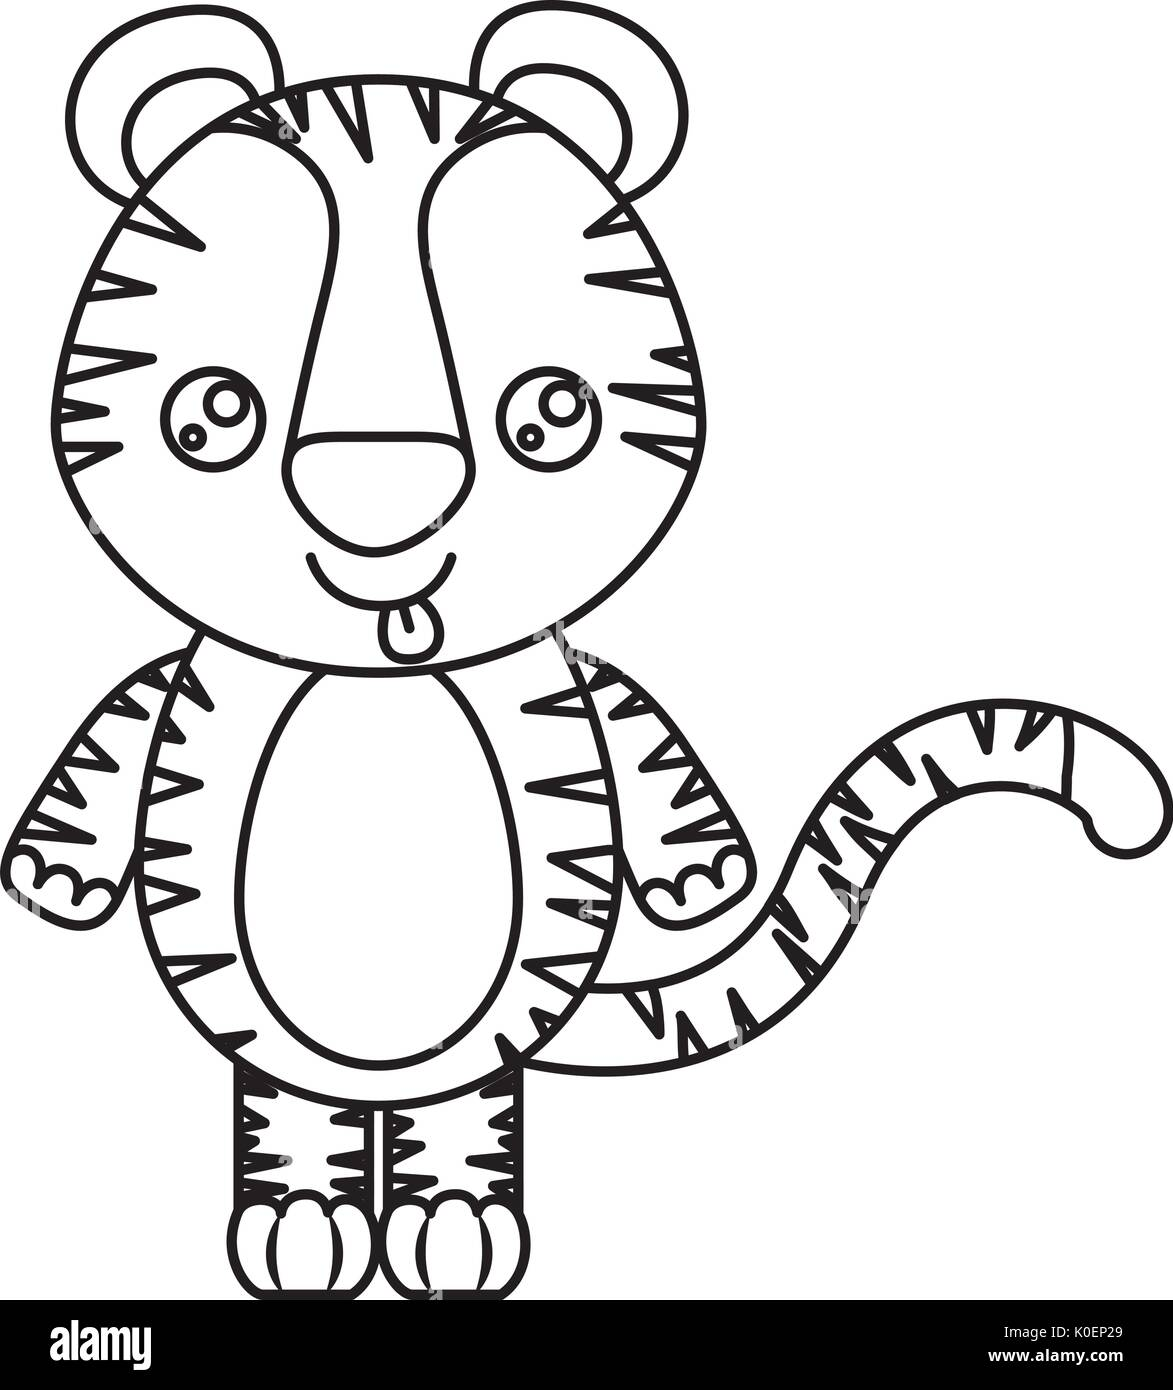 Png Sketch Silhouette Of Kawaii Caricature Cute Expression And Tongue Out Of Tiger Animal Archidev Sketch Silhouette Of Kawaii Caricature Cute Expression And Tongue